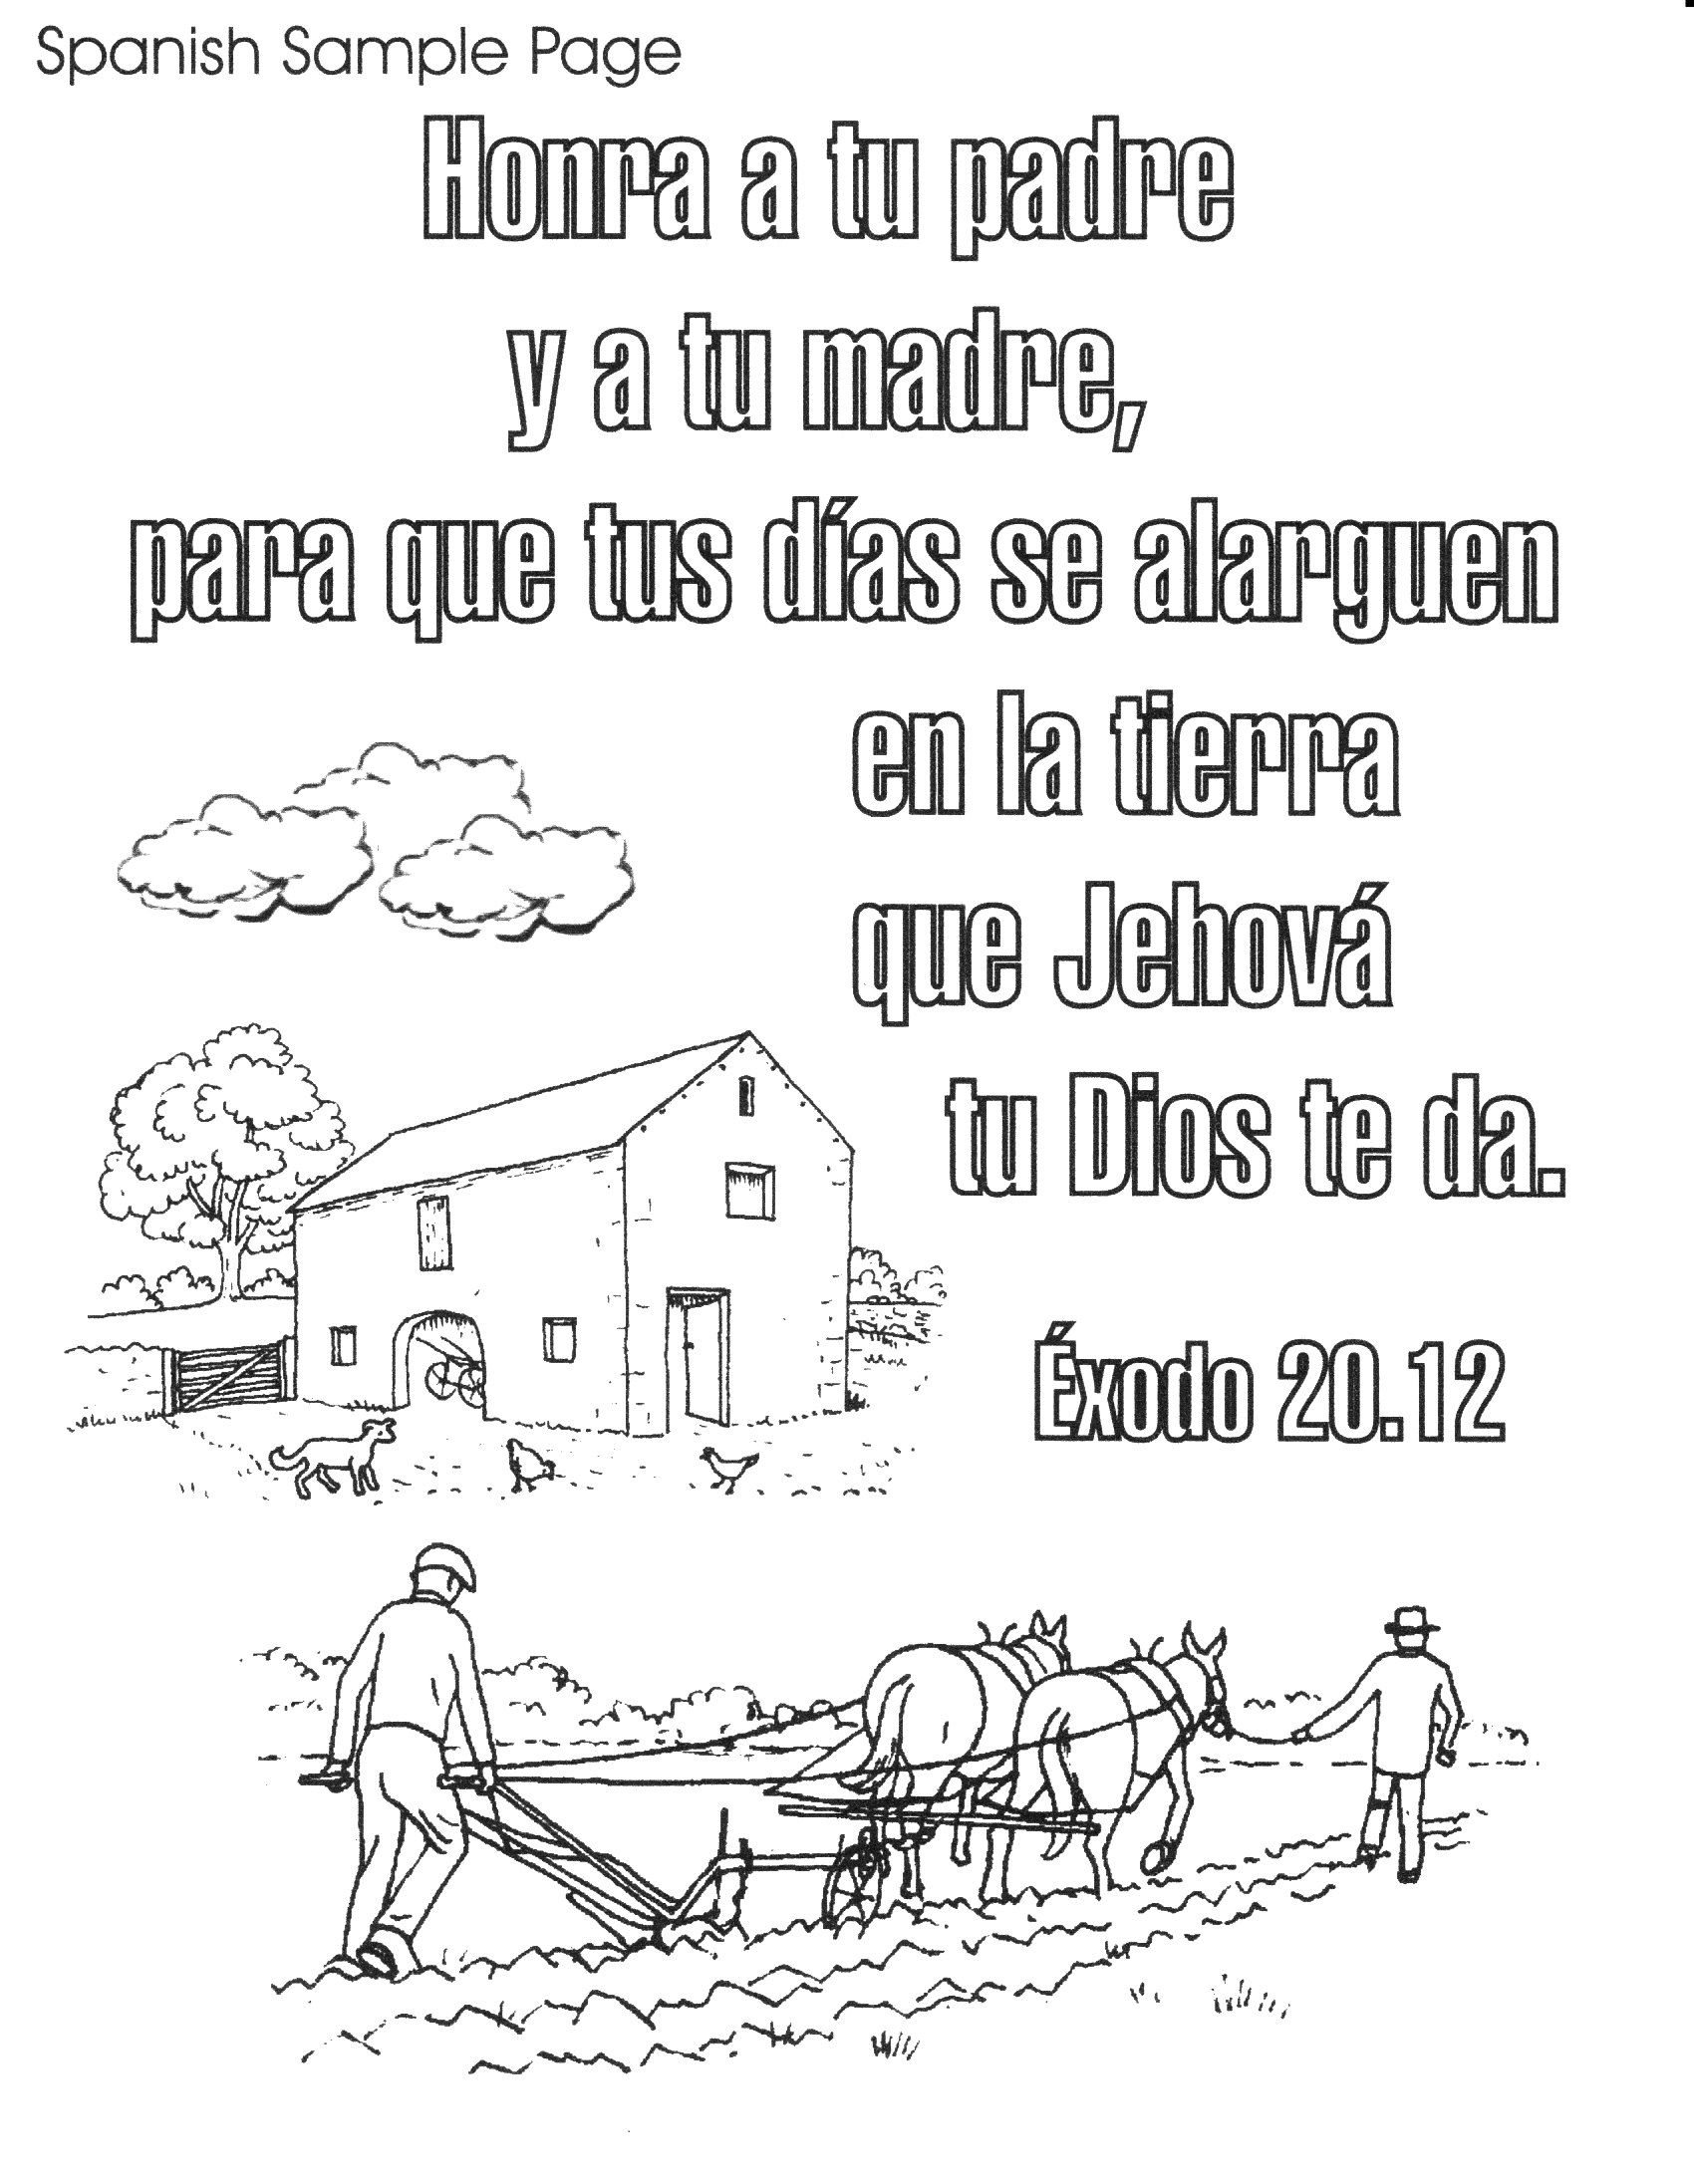 Coloring pages for preschoolers on salavation - Bible Spanish Coloring Pages Free Printable Spanish Bible Verse Coloring Book